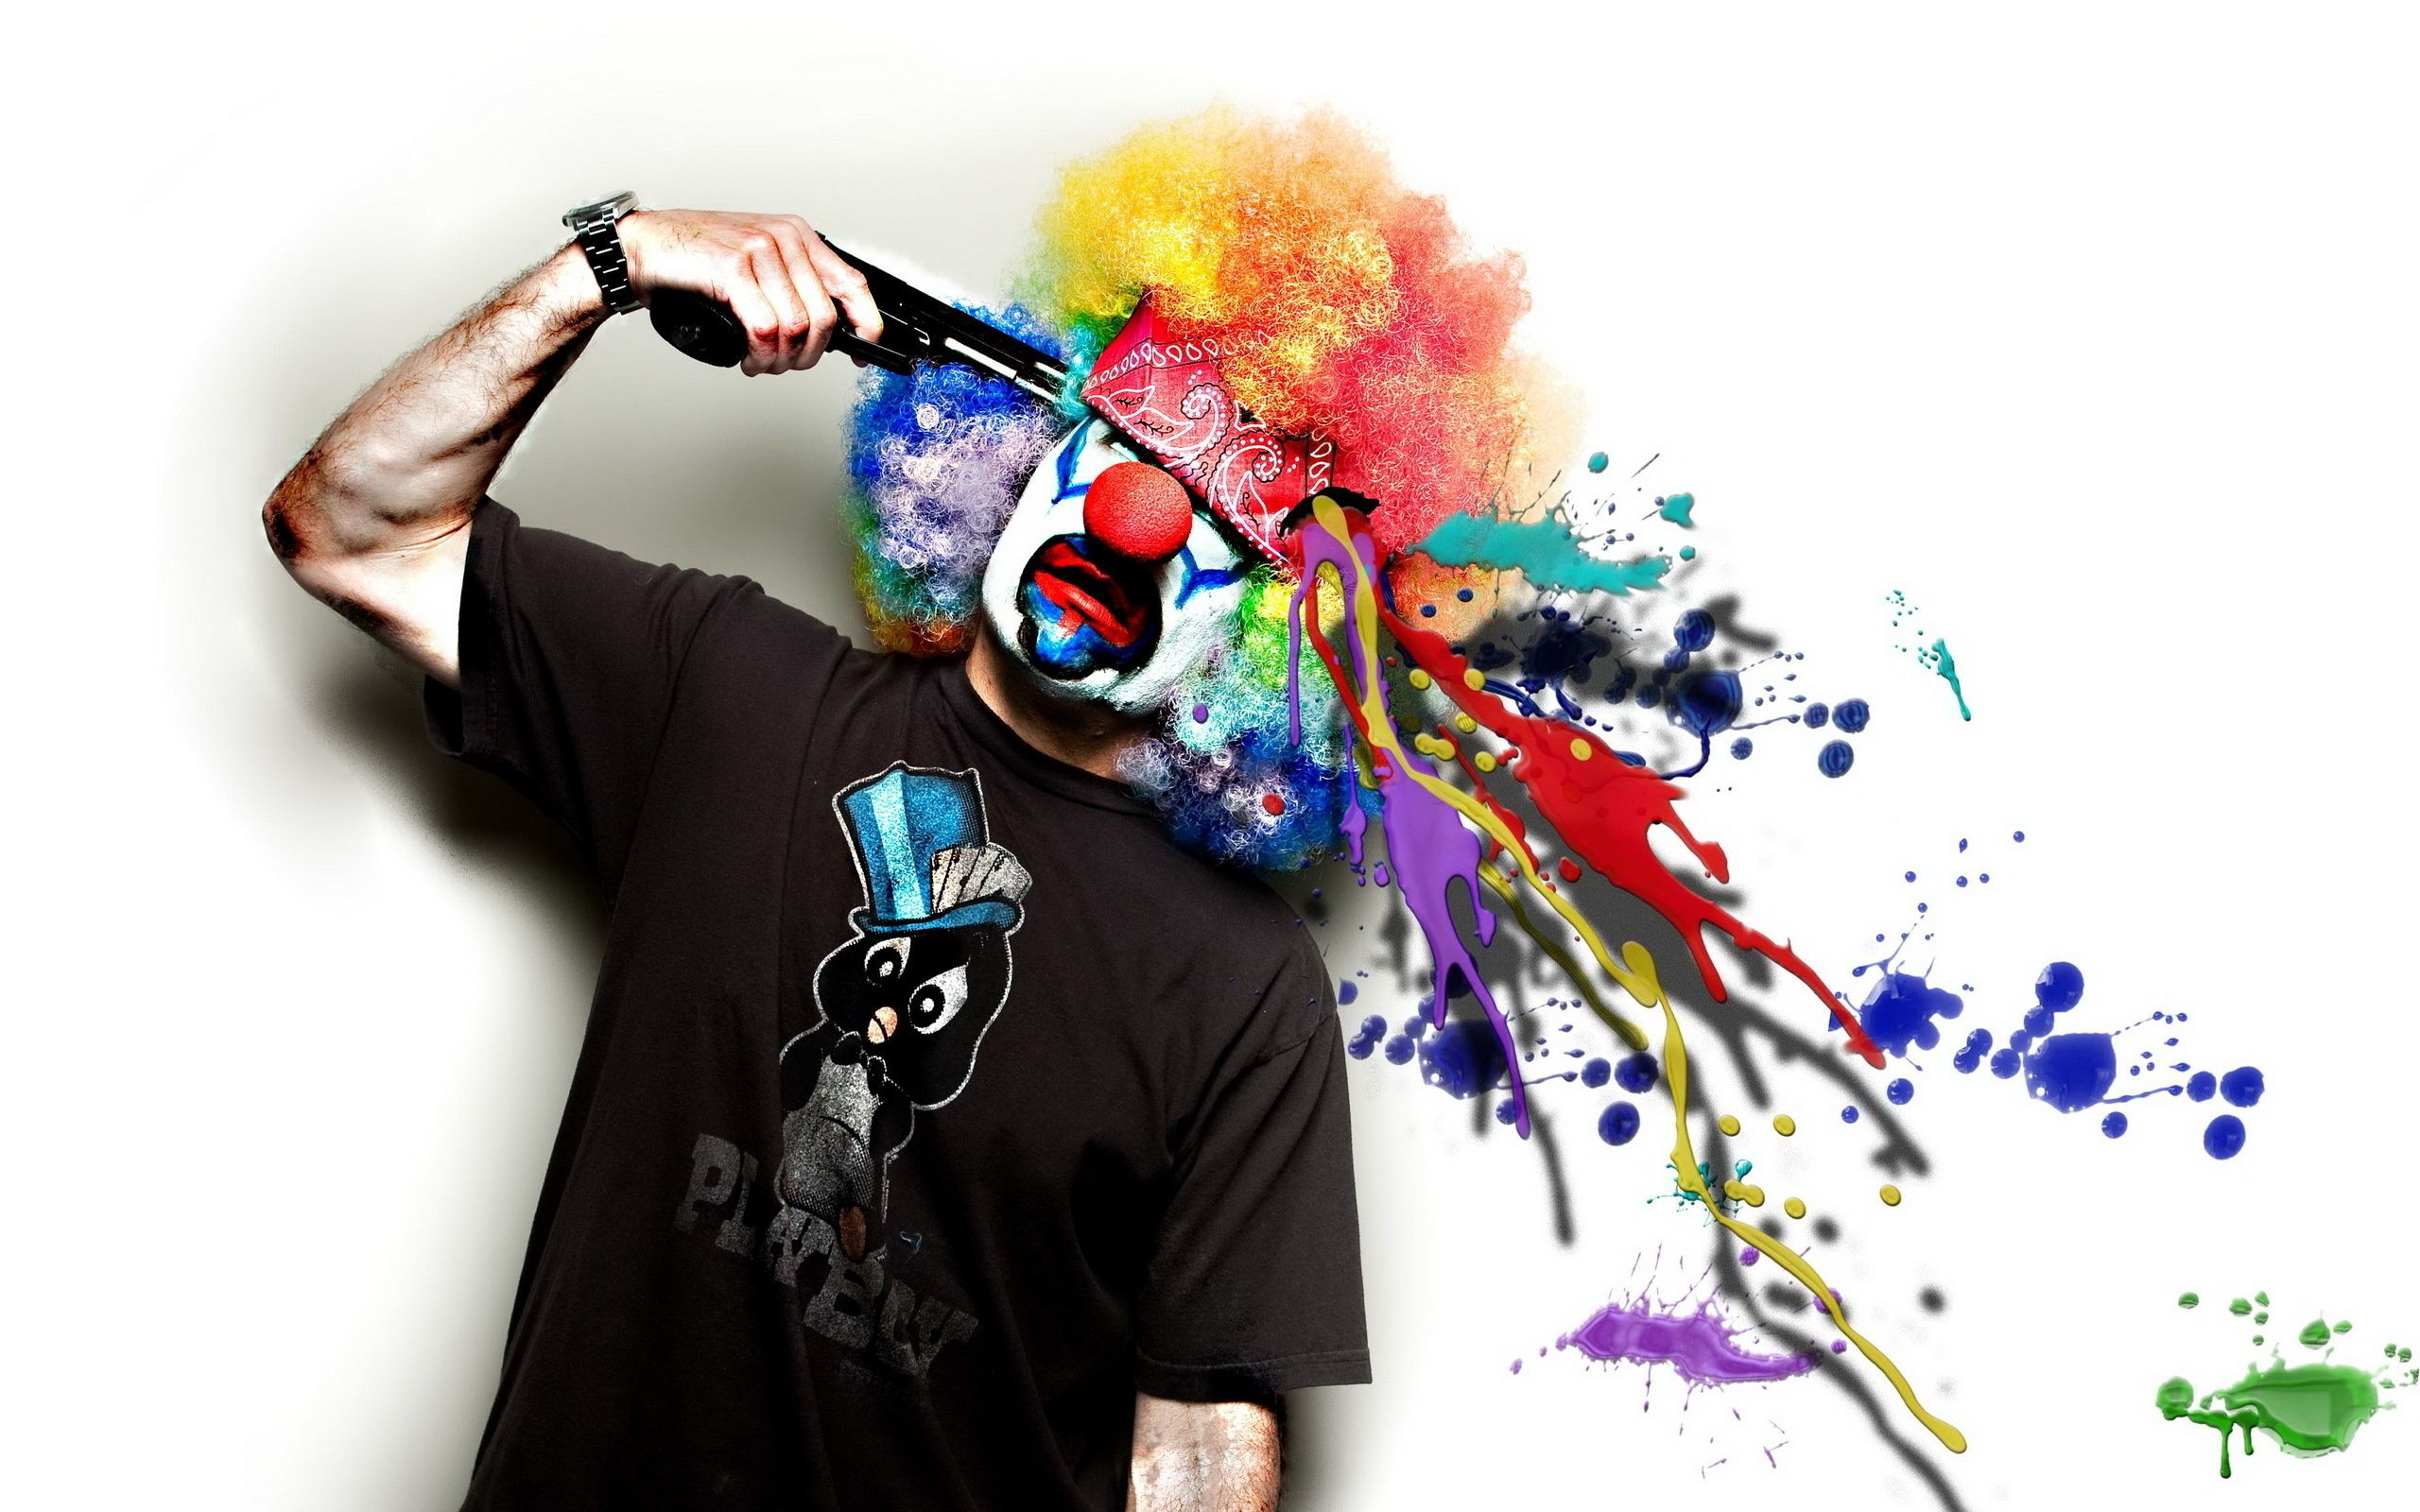 Arma di pistole Paint Barrel Clown - Sfondi per il desktop